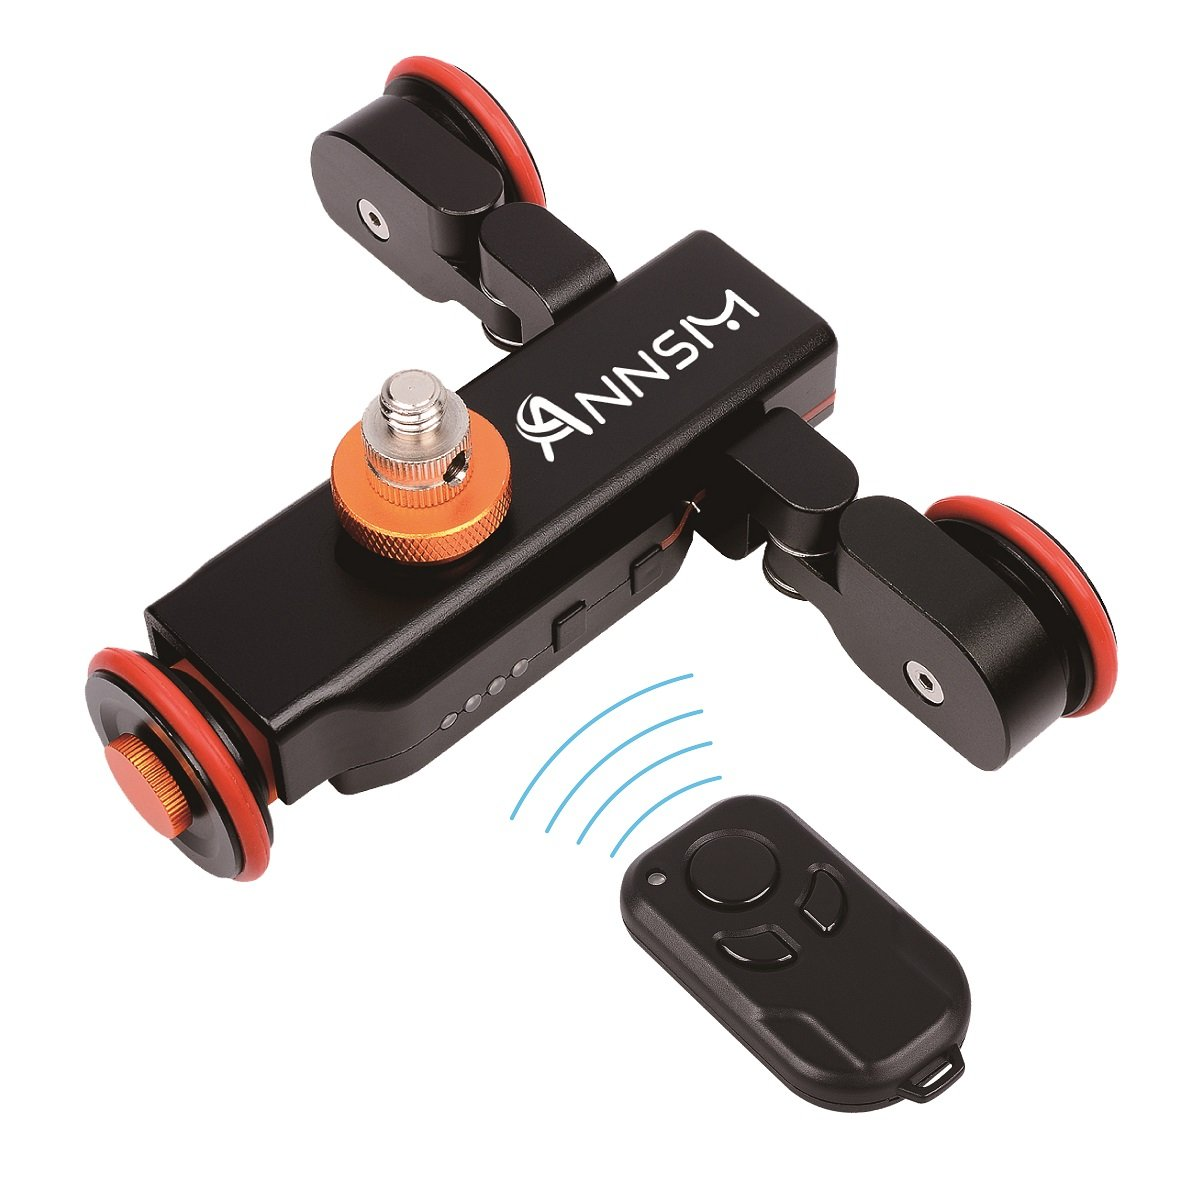 Annsm Pro 3-Wheels Wireless Pure Metal Camera Auto Motorized Dolly Track Slider Portable Table Top for DSLR Camcorders Gopro iPhone or Smartphones with 3 Speeds with Remote Controller Black by ANNSM